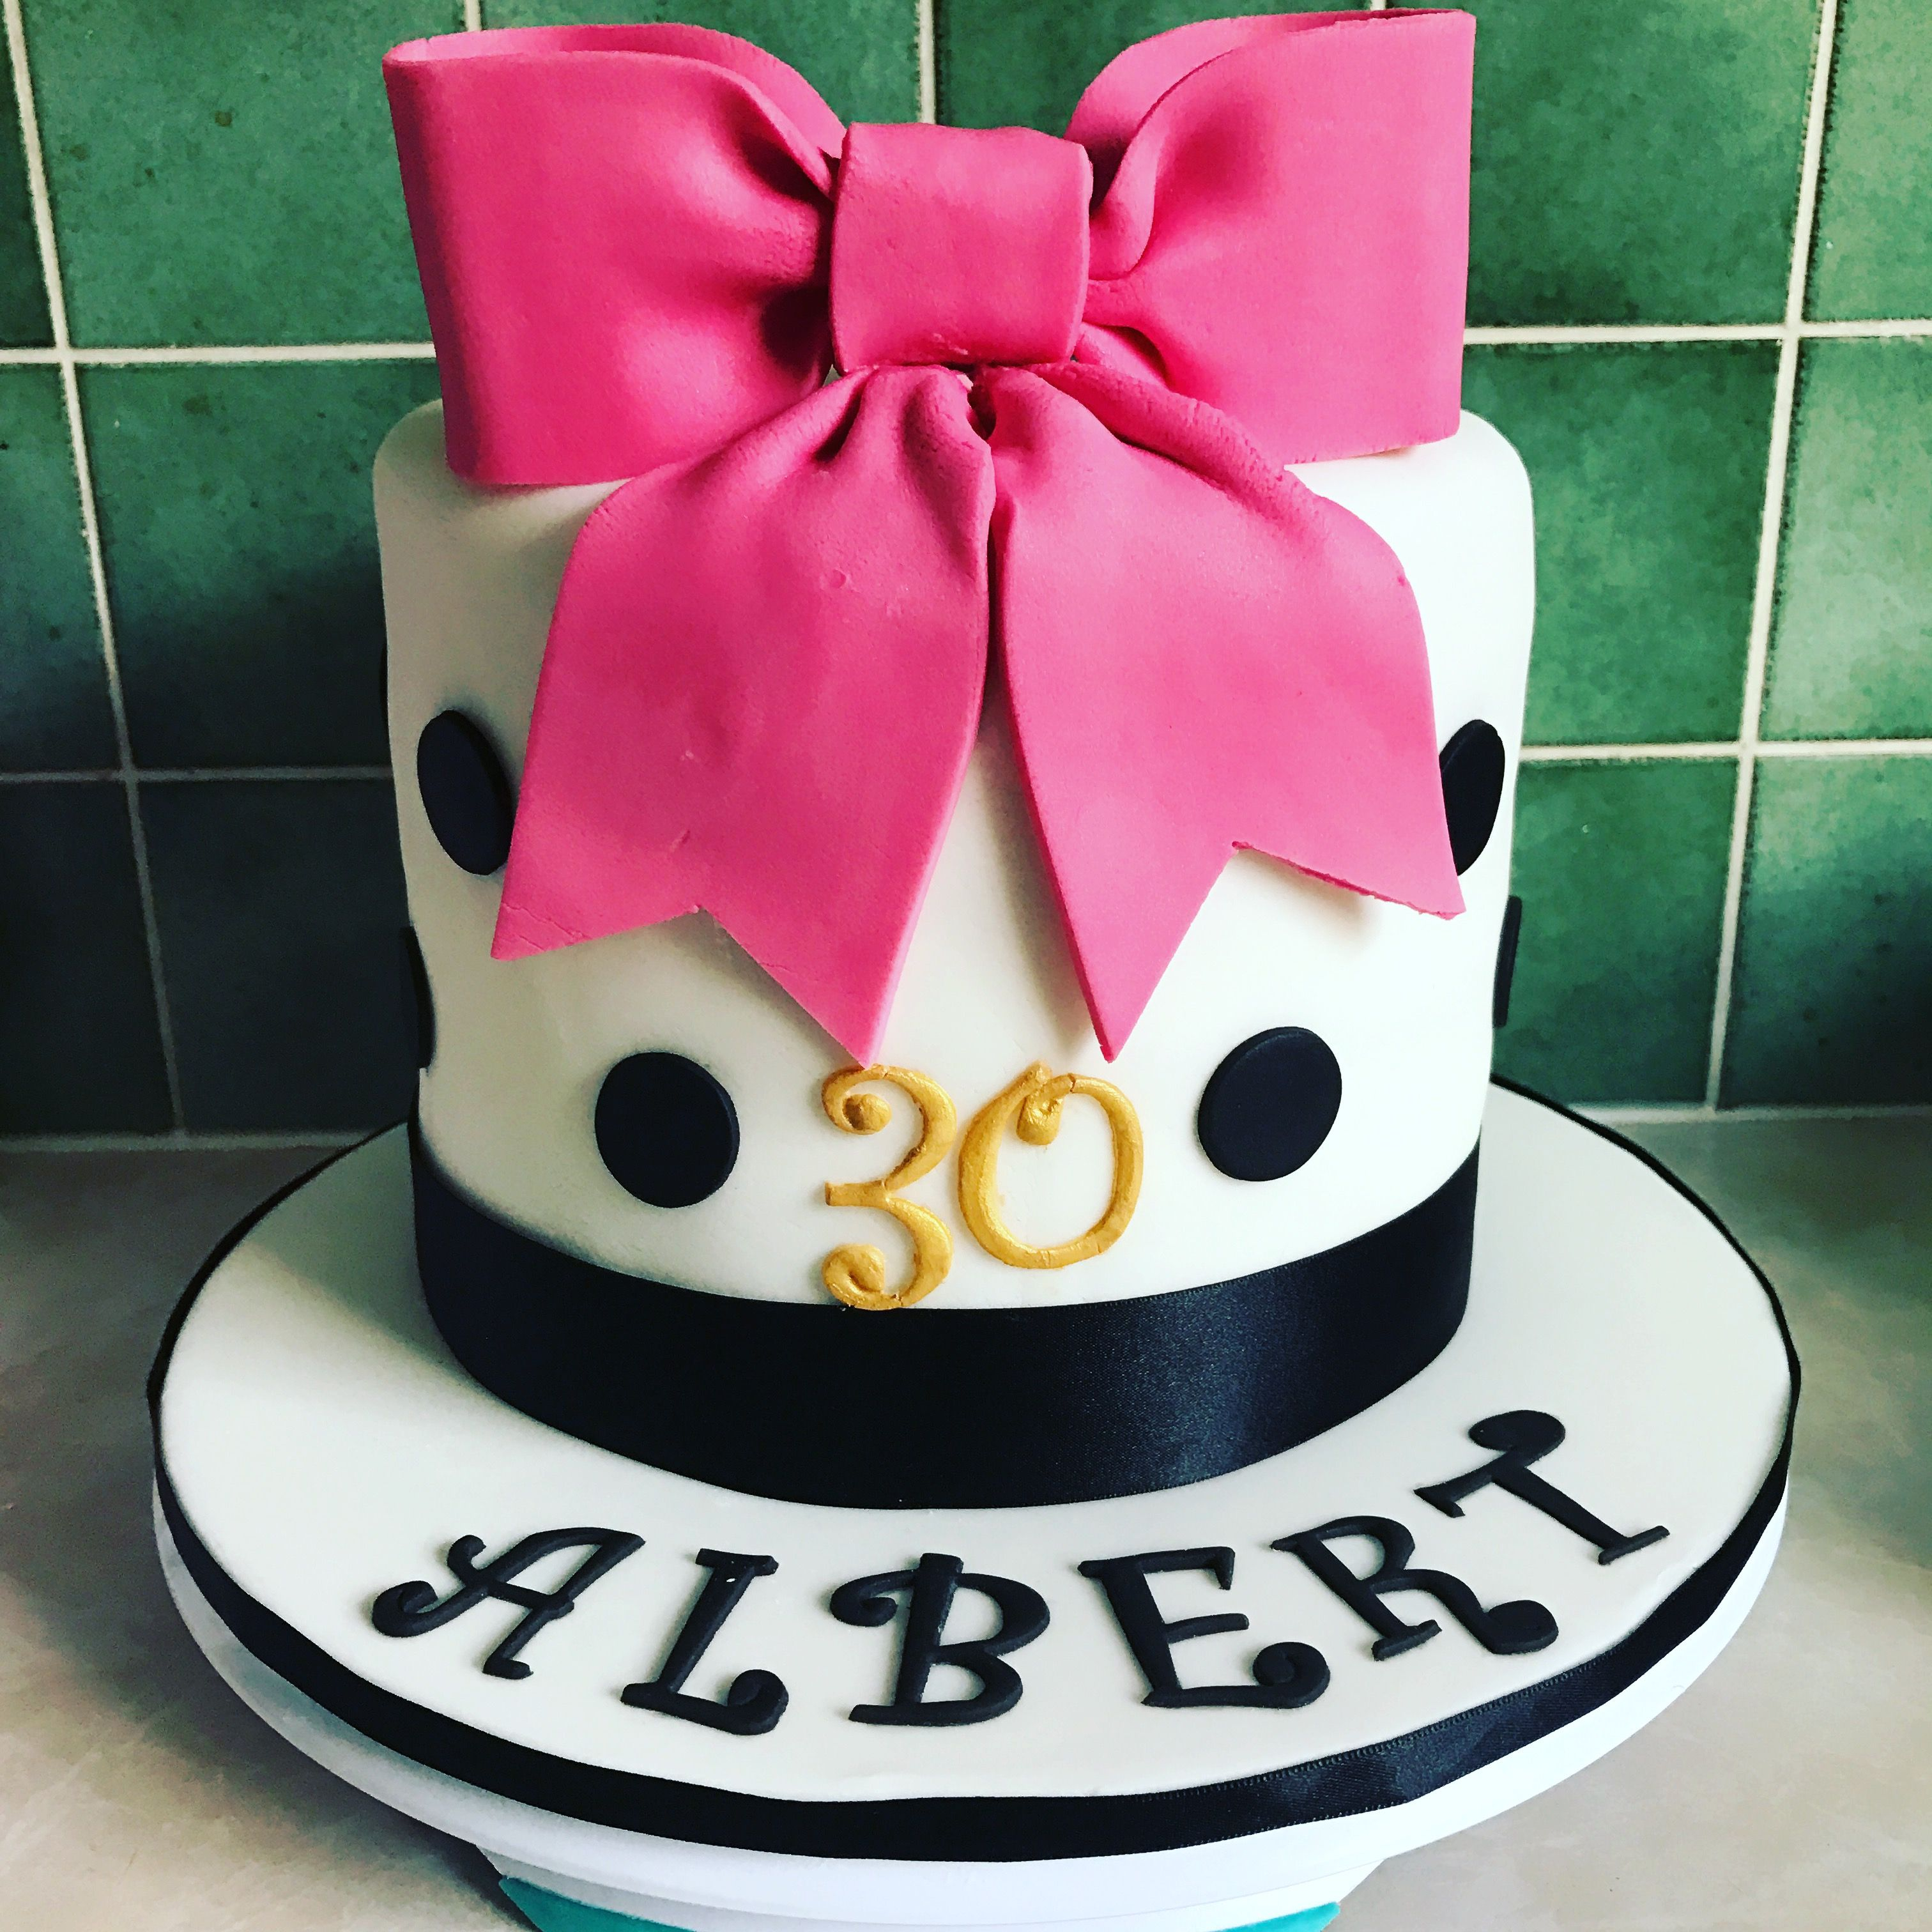 Elegant 30th Birthday cake with spots a bow My cake creations